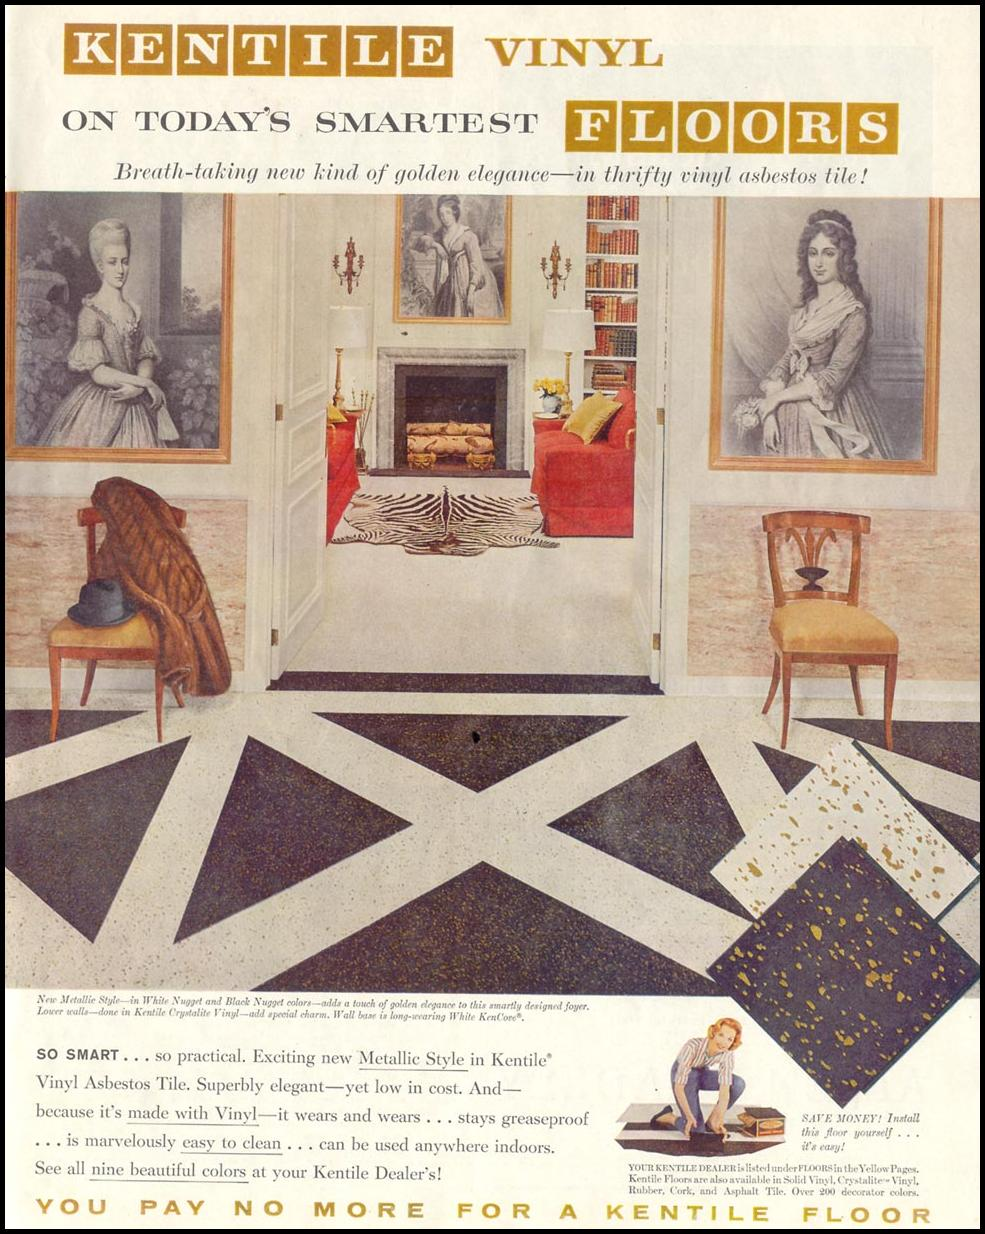 KENTILE VINYL FLOORS SATURDAY EVENING POST 05/02/1959 p. 77